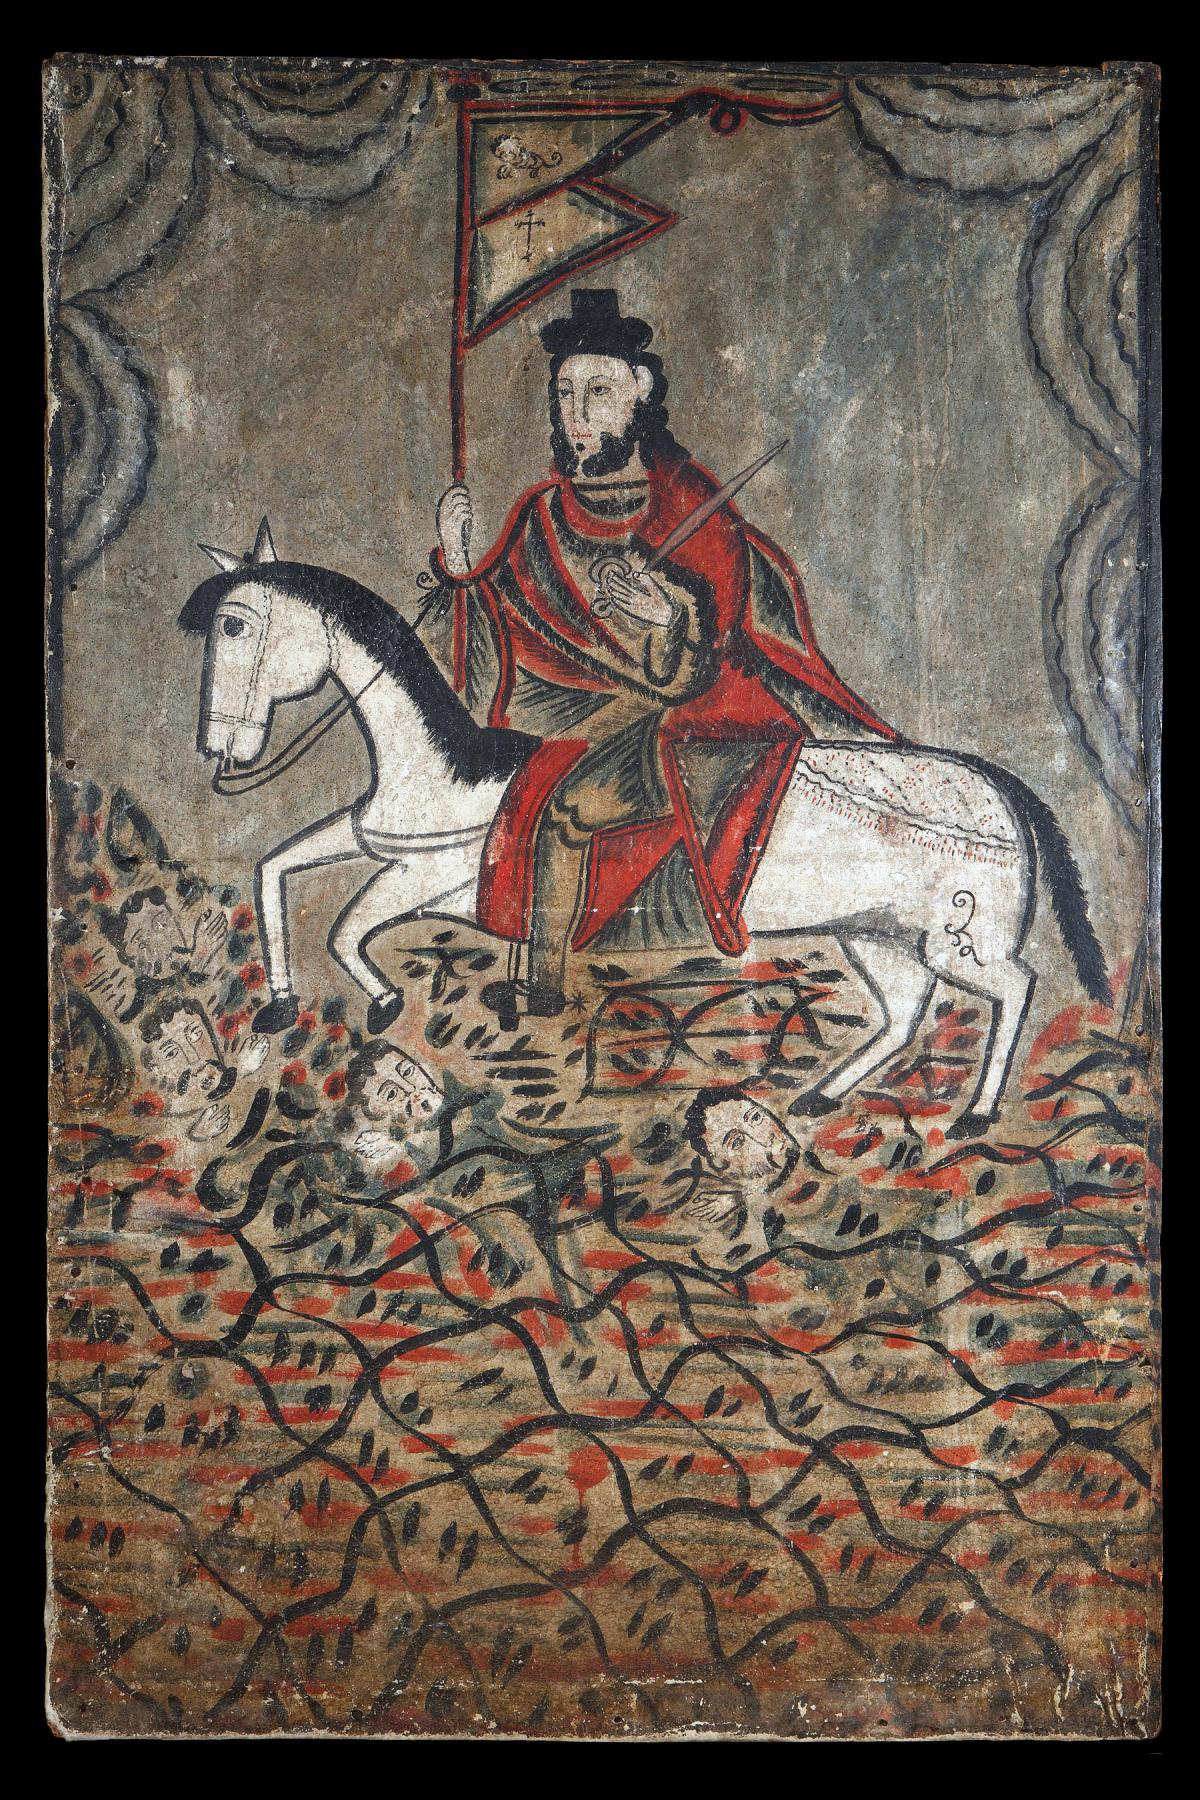 saint james riding a white horse, wearing a red cloak and holding a sword over his shoulder